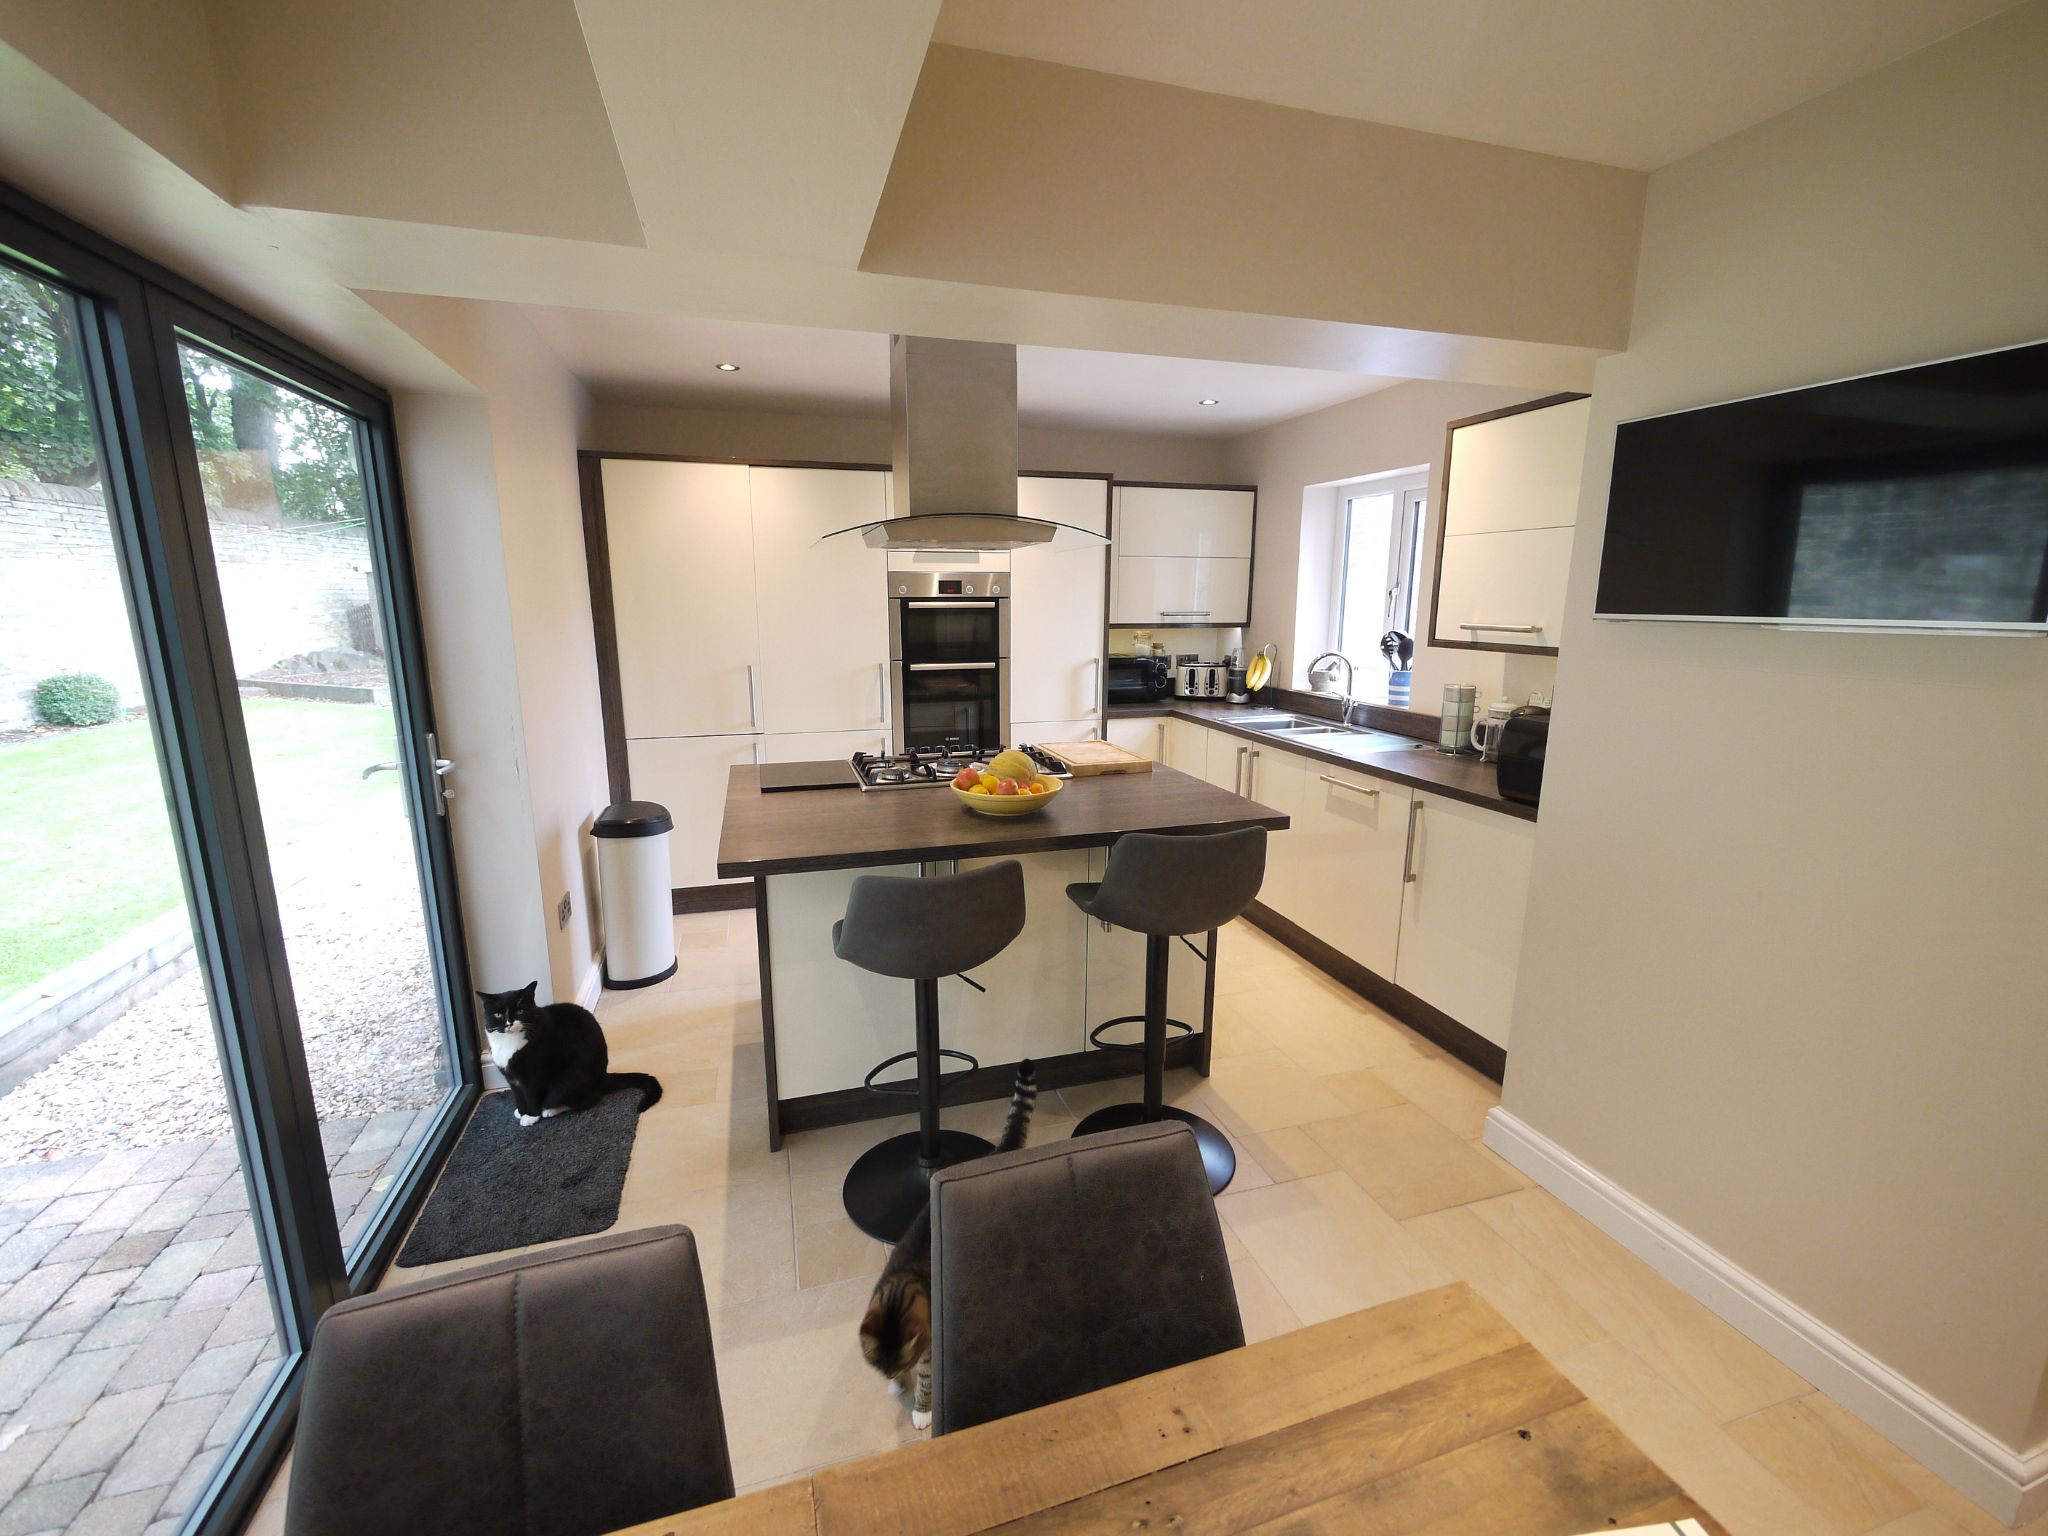 3 bedroom semi-detached house SSTC in Brighouse - Dining Kitchen.